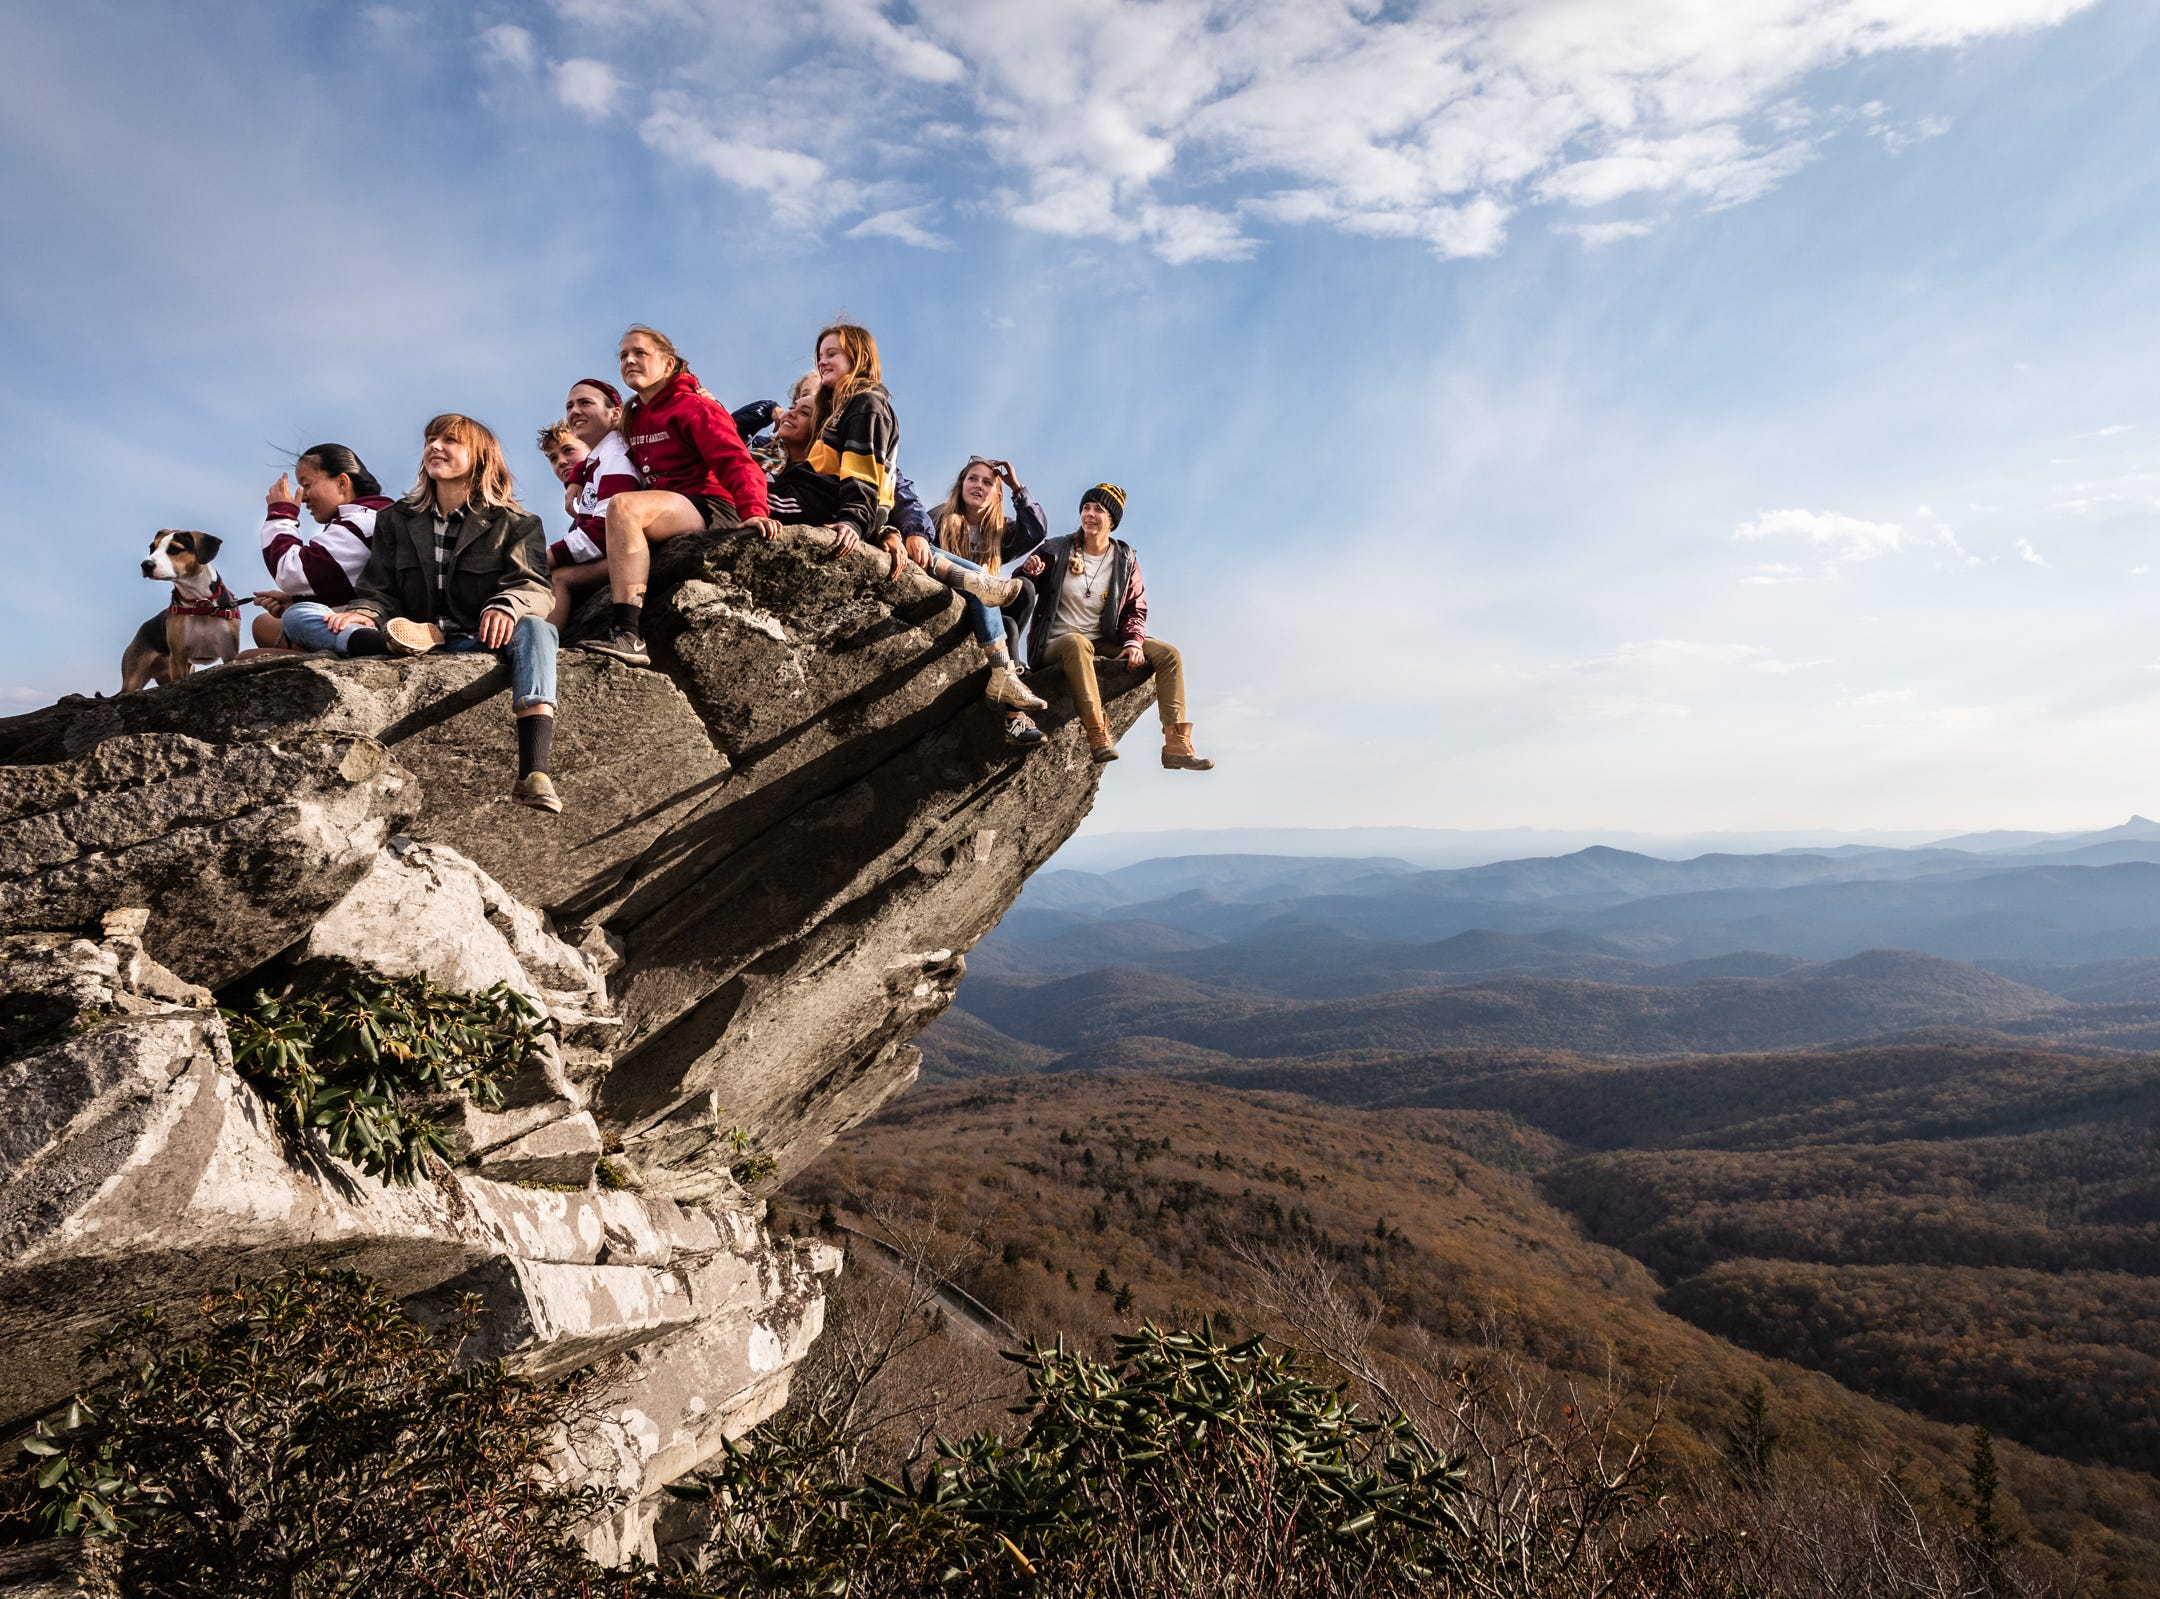 A group of young visitors to the Rough Ridge overlook on the Blue Ridge Parkway pose for a photograph sitting on a rocky overhang Oct. 28, 2018.